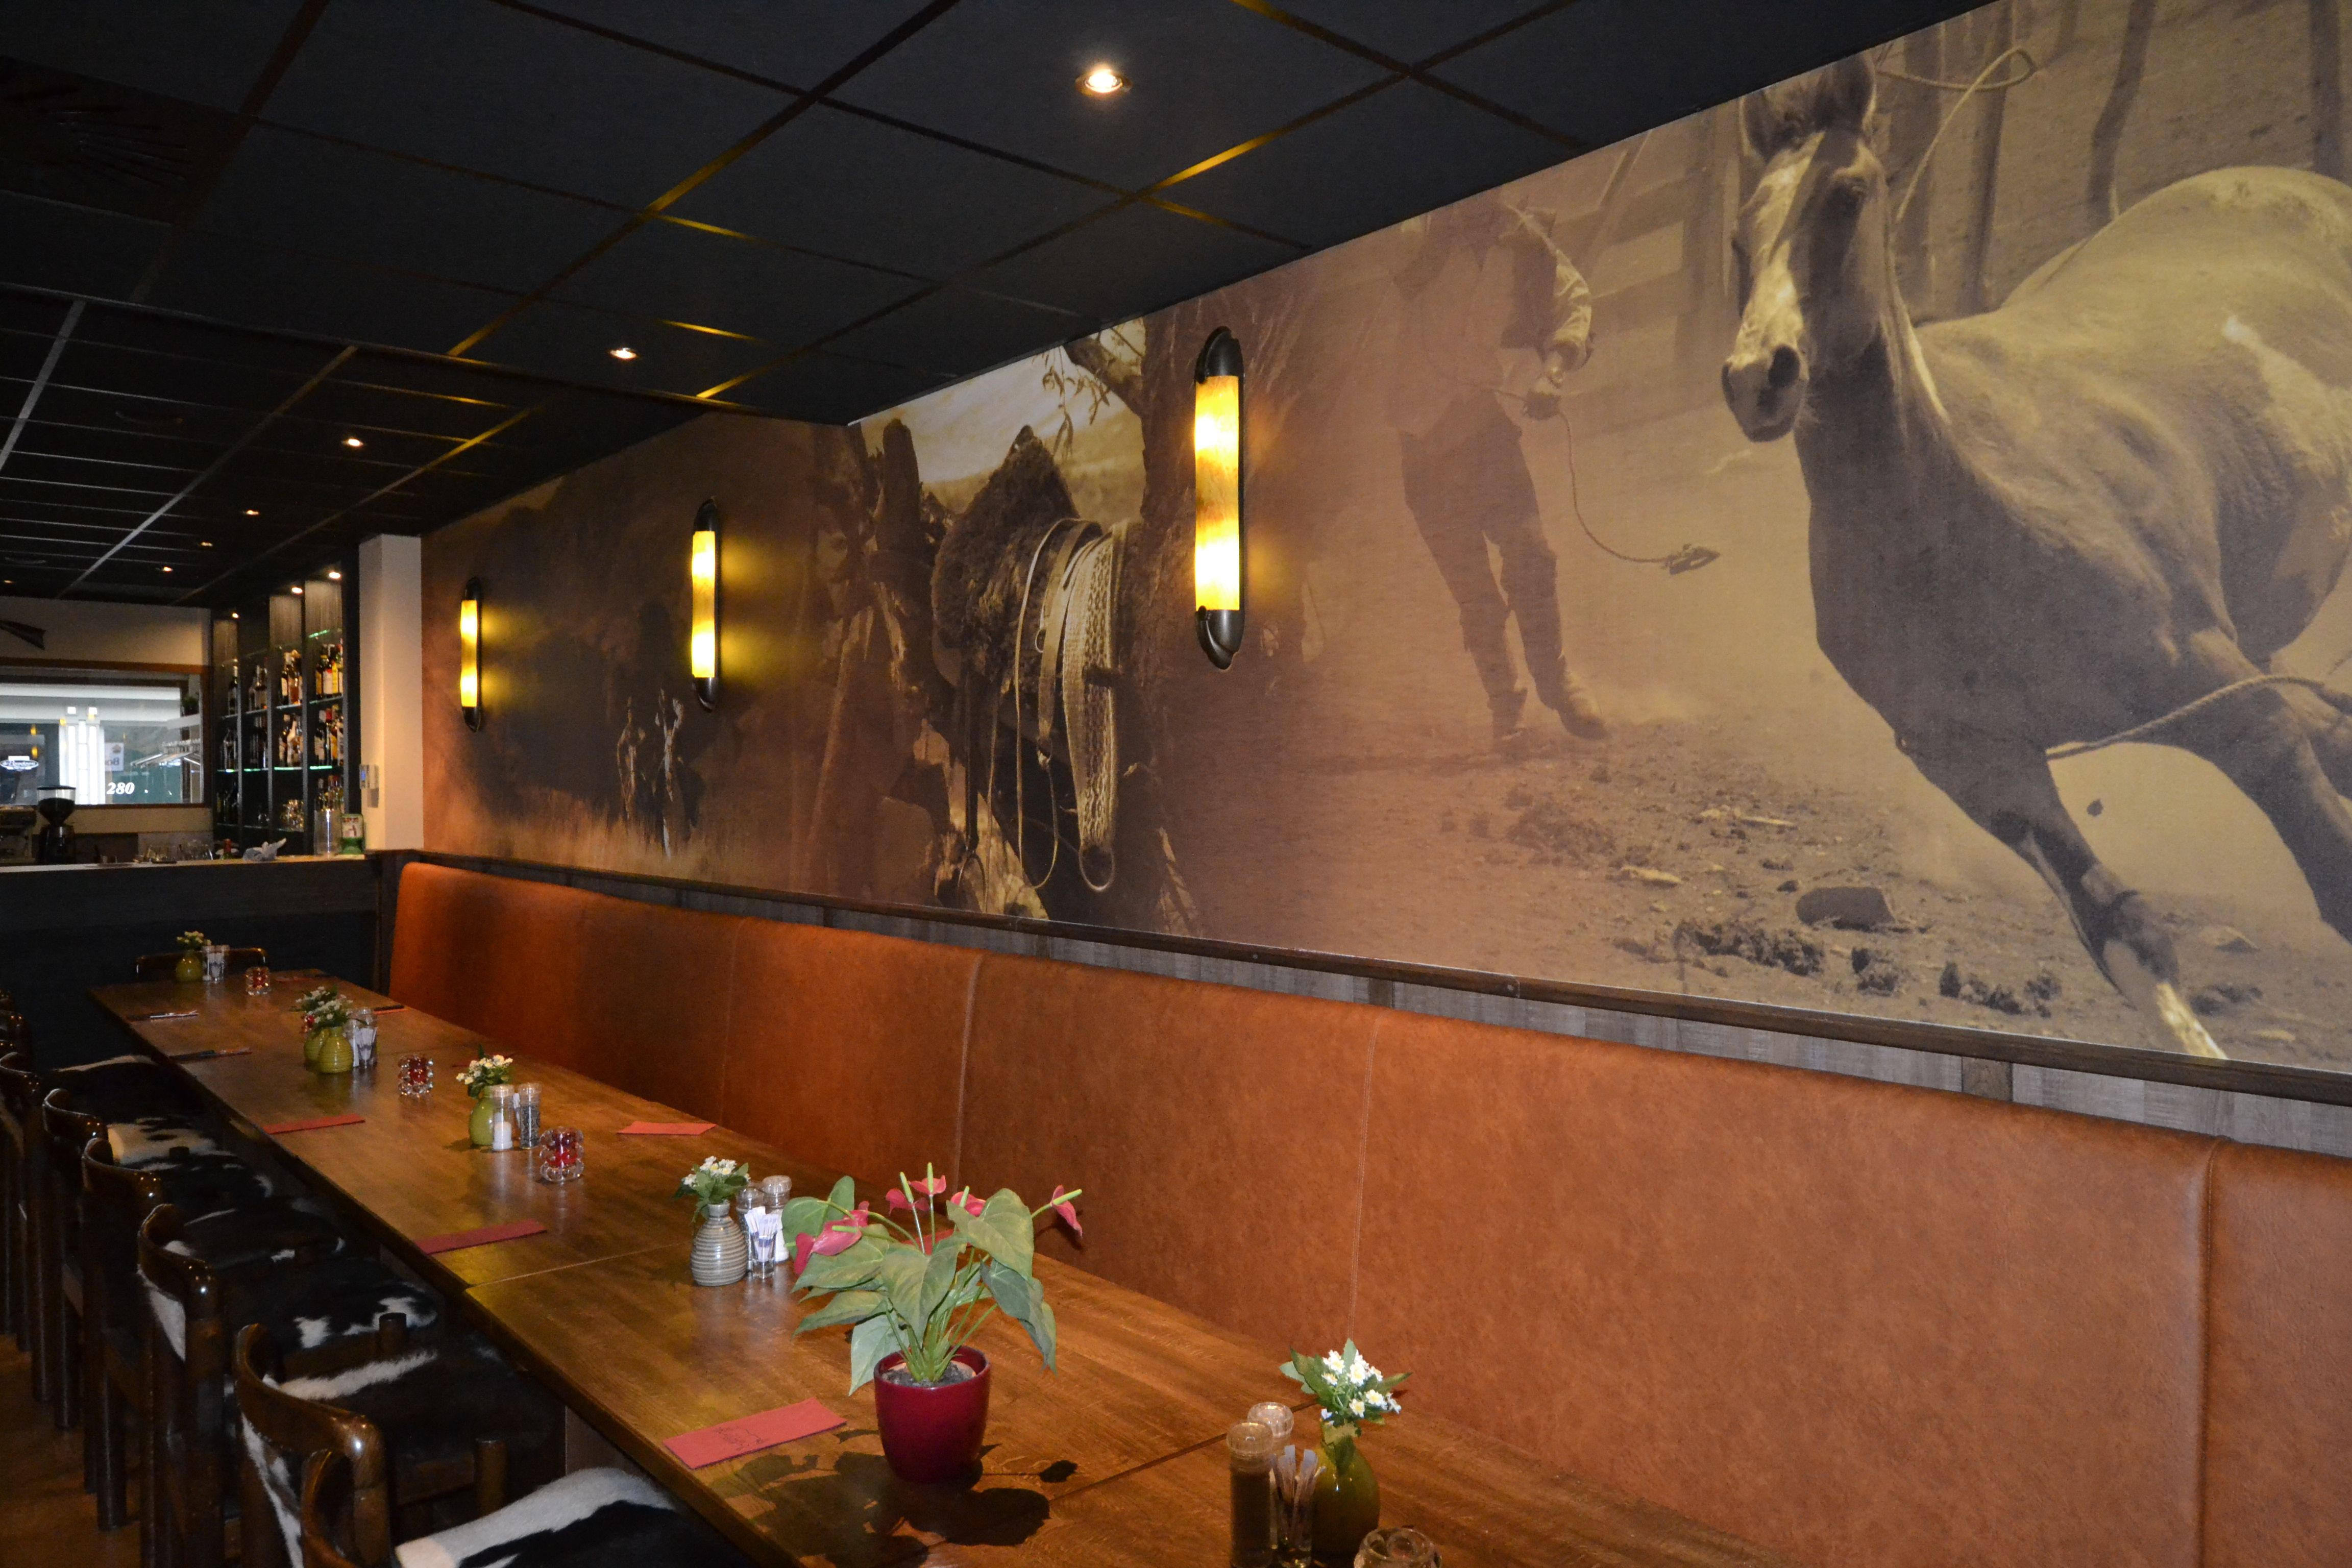 Restaurant #horeca #interieur #interior #decoration #decoratie